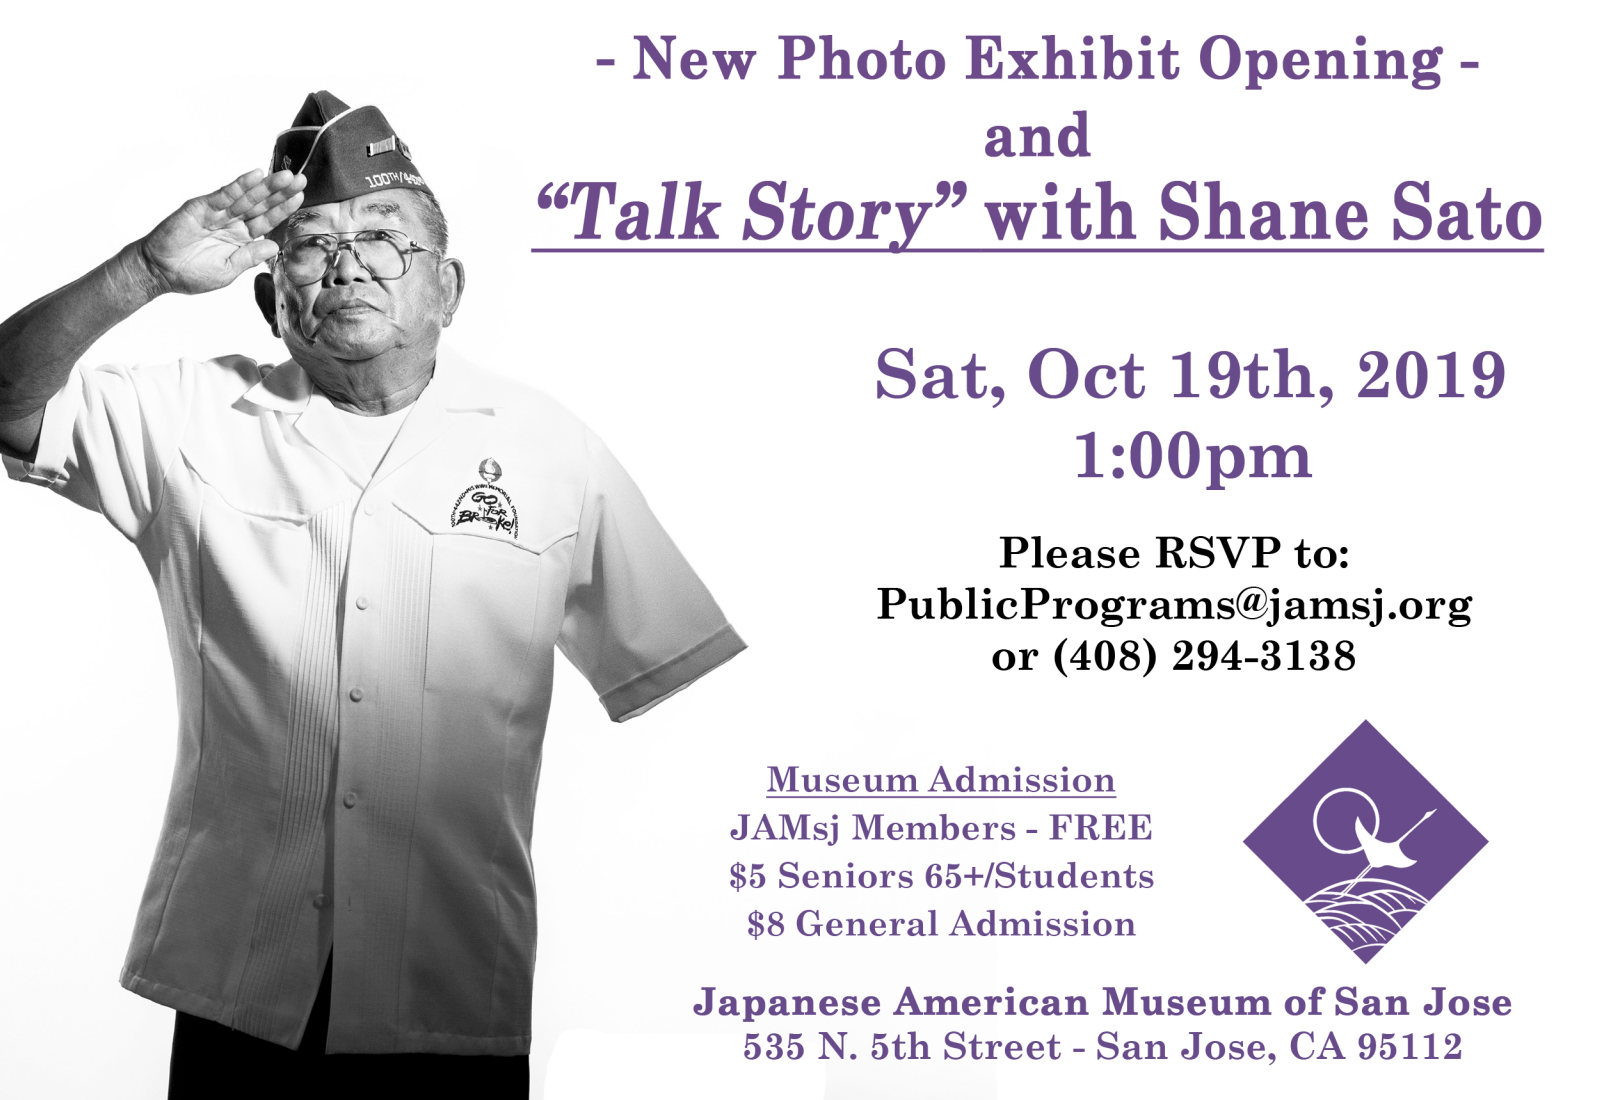 """Japanese American Museum of San Jose   Please join us for a new Photo Exhibit Opening and """"Talk Story"""" with Shane Sato on Sat, Oct 19th, 2019 at 1:00pm.  18 years in the making, photographer Shane Sato has been shooting moving portraits of Nisei soldiers to create a one of a kind coffee table book. Poignant images of men who fought for America while America put their families and loved ones in prison. This 184-page 12x12 hardcover book contains portraits of over 80 Japanese American WWII veterans. The story of the Nisei is inspiring… and each portrait is accompanied by candid photos and a short story—usually a personal one, whenever possible. This portrait book is not just a glimpse into Japanese American history, but a triumphant story of American history.    Please RSVP for this event to: PublicPrograms@jamsj.org or (408) 294-3138  Museum Admission  JAMsj Members - FREE  $5 Seniors 65+/Students  $8 General Admission    Japanese American Museum of San Jose  535 N. 5th Street San Jose, CA 95112"""